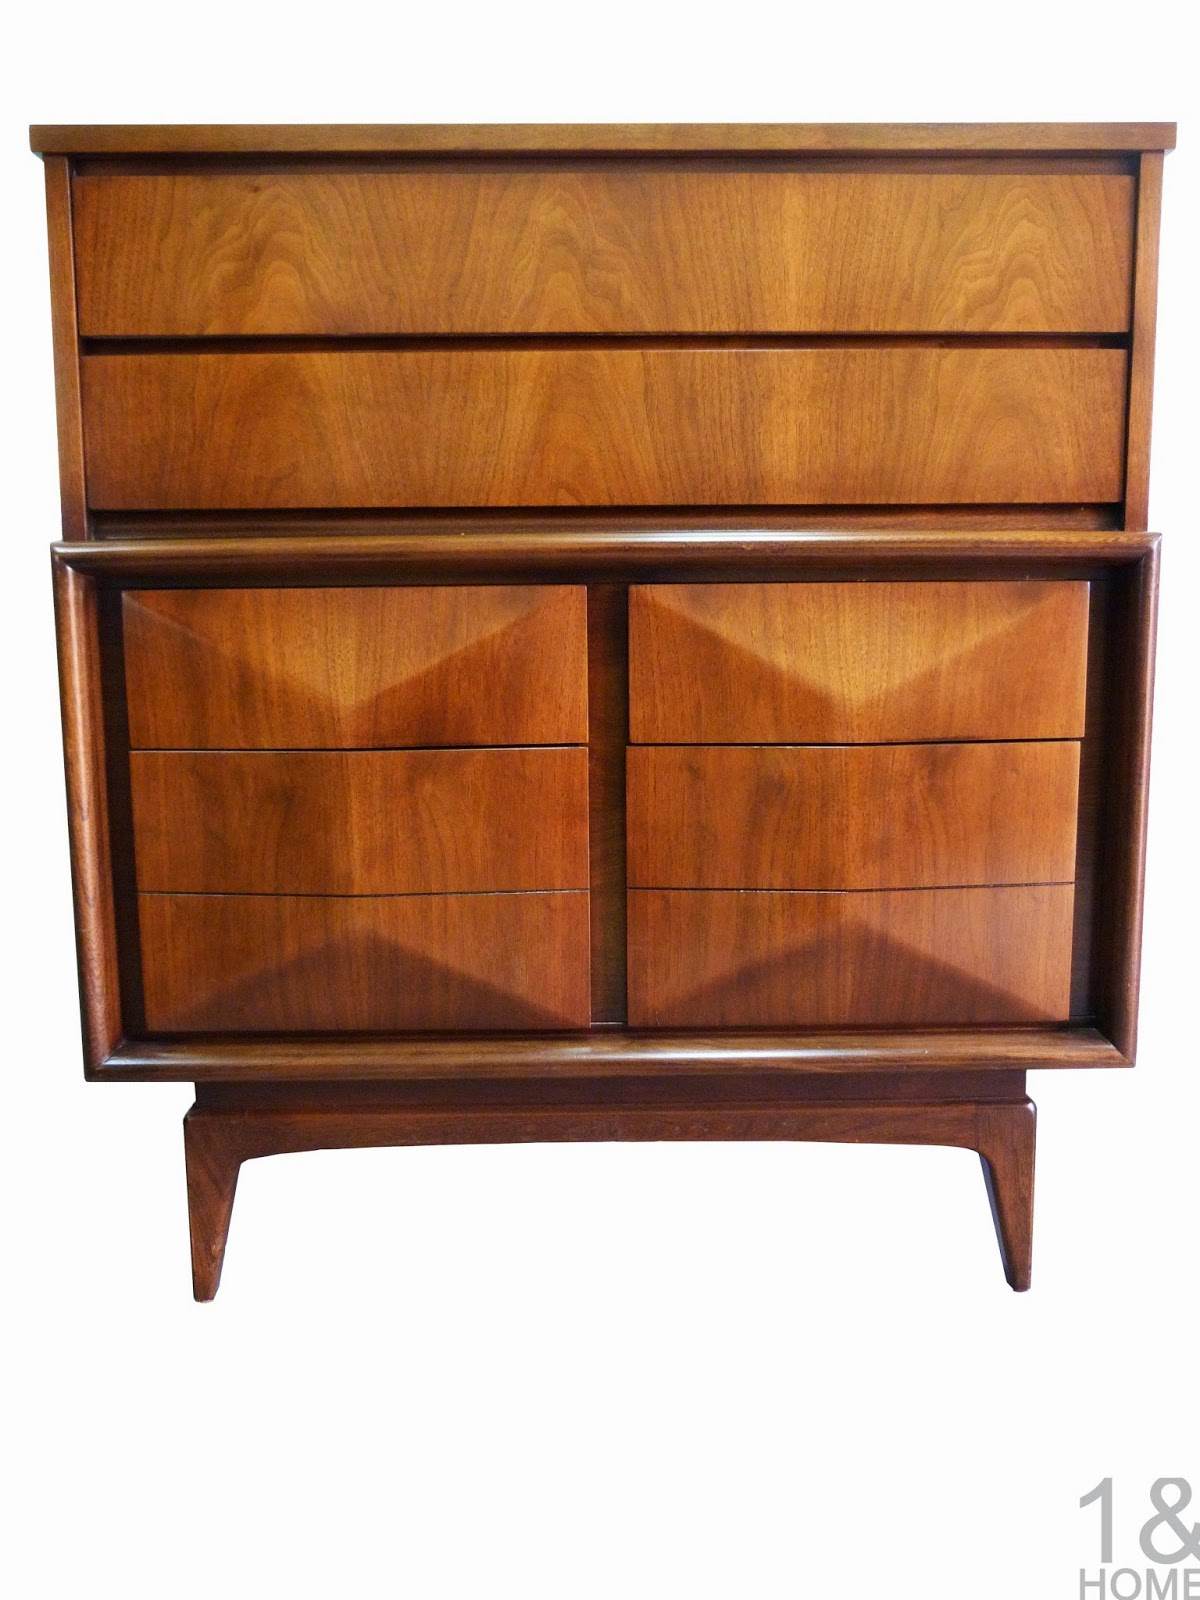 Diamond Front Mid-Century Dresser Chest by United Furniture